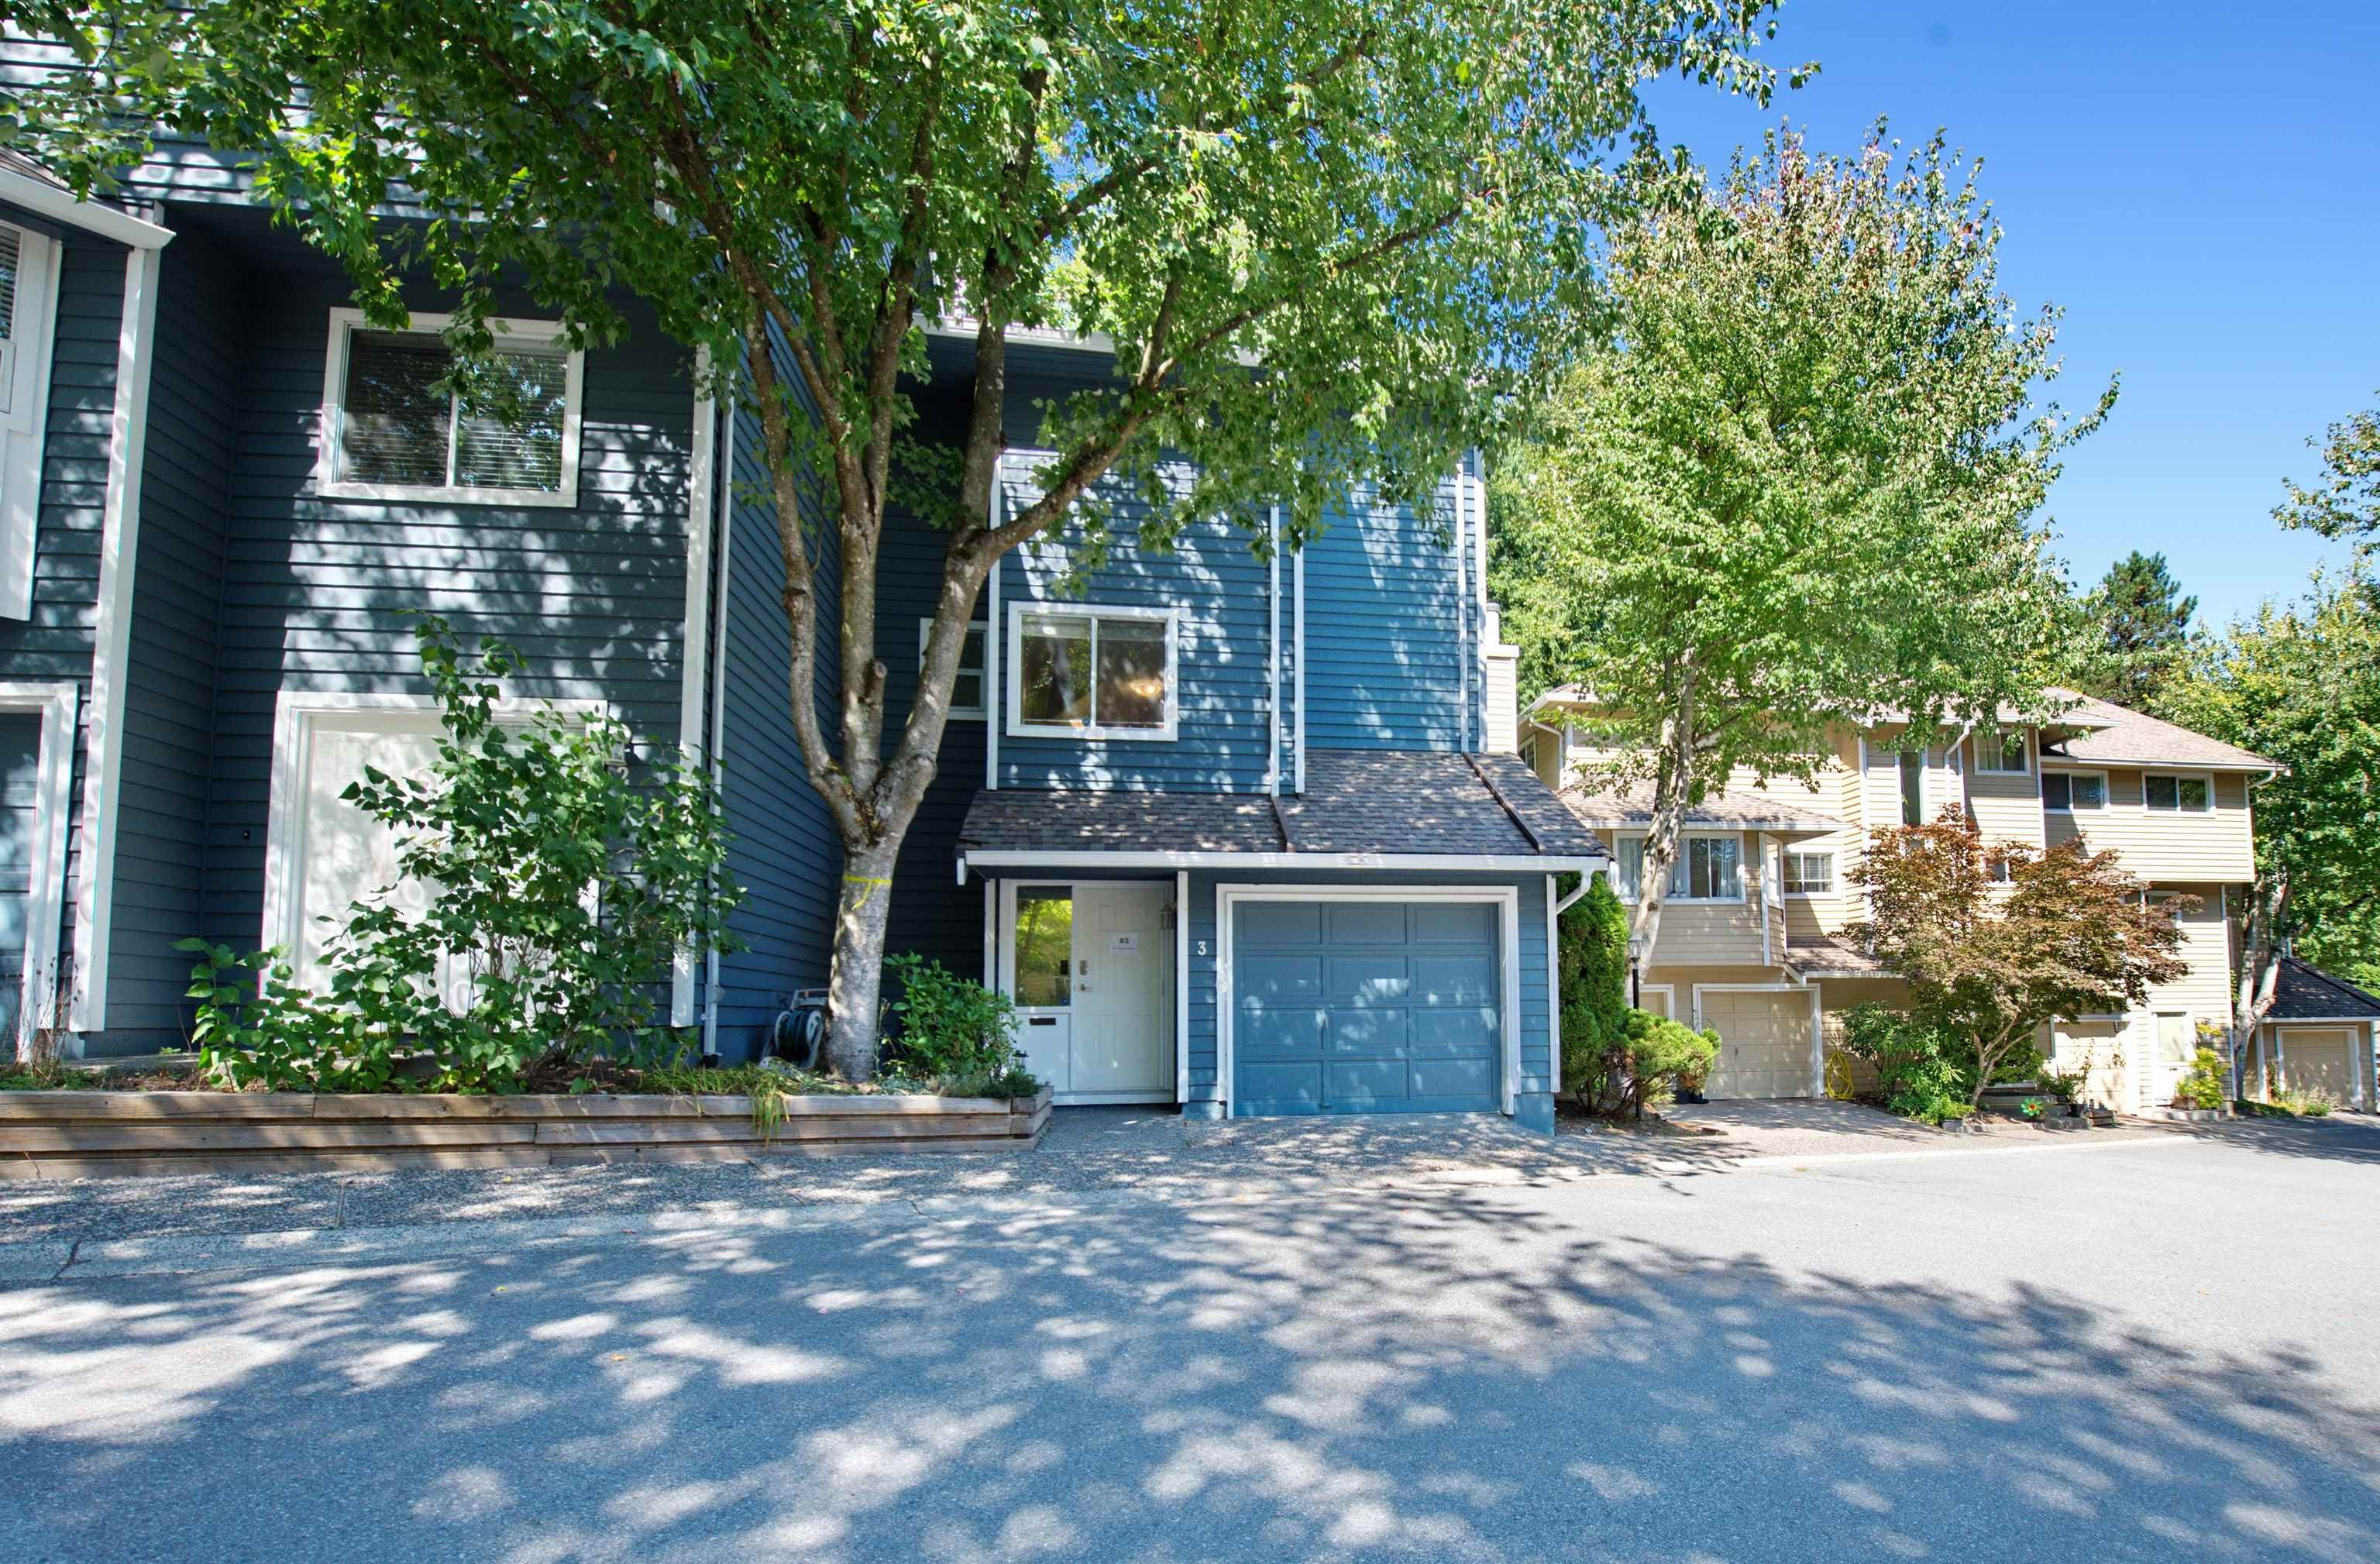 """Main Photo: 3 9000 ASH GROVE Crescent in Burnaby: Forest Hills BN Townhouse for sale in """"Ashbrook Place"""" (Burnaby North)  : MLS®# R2615088"""